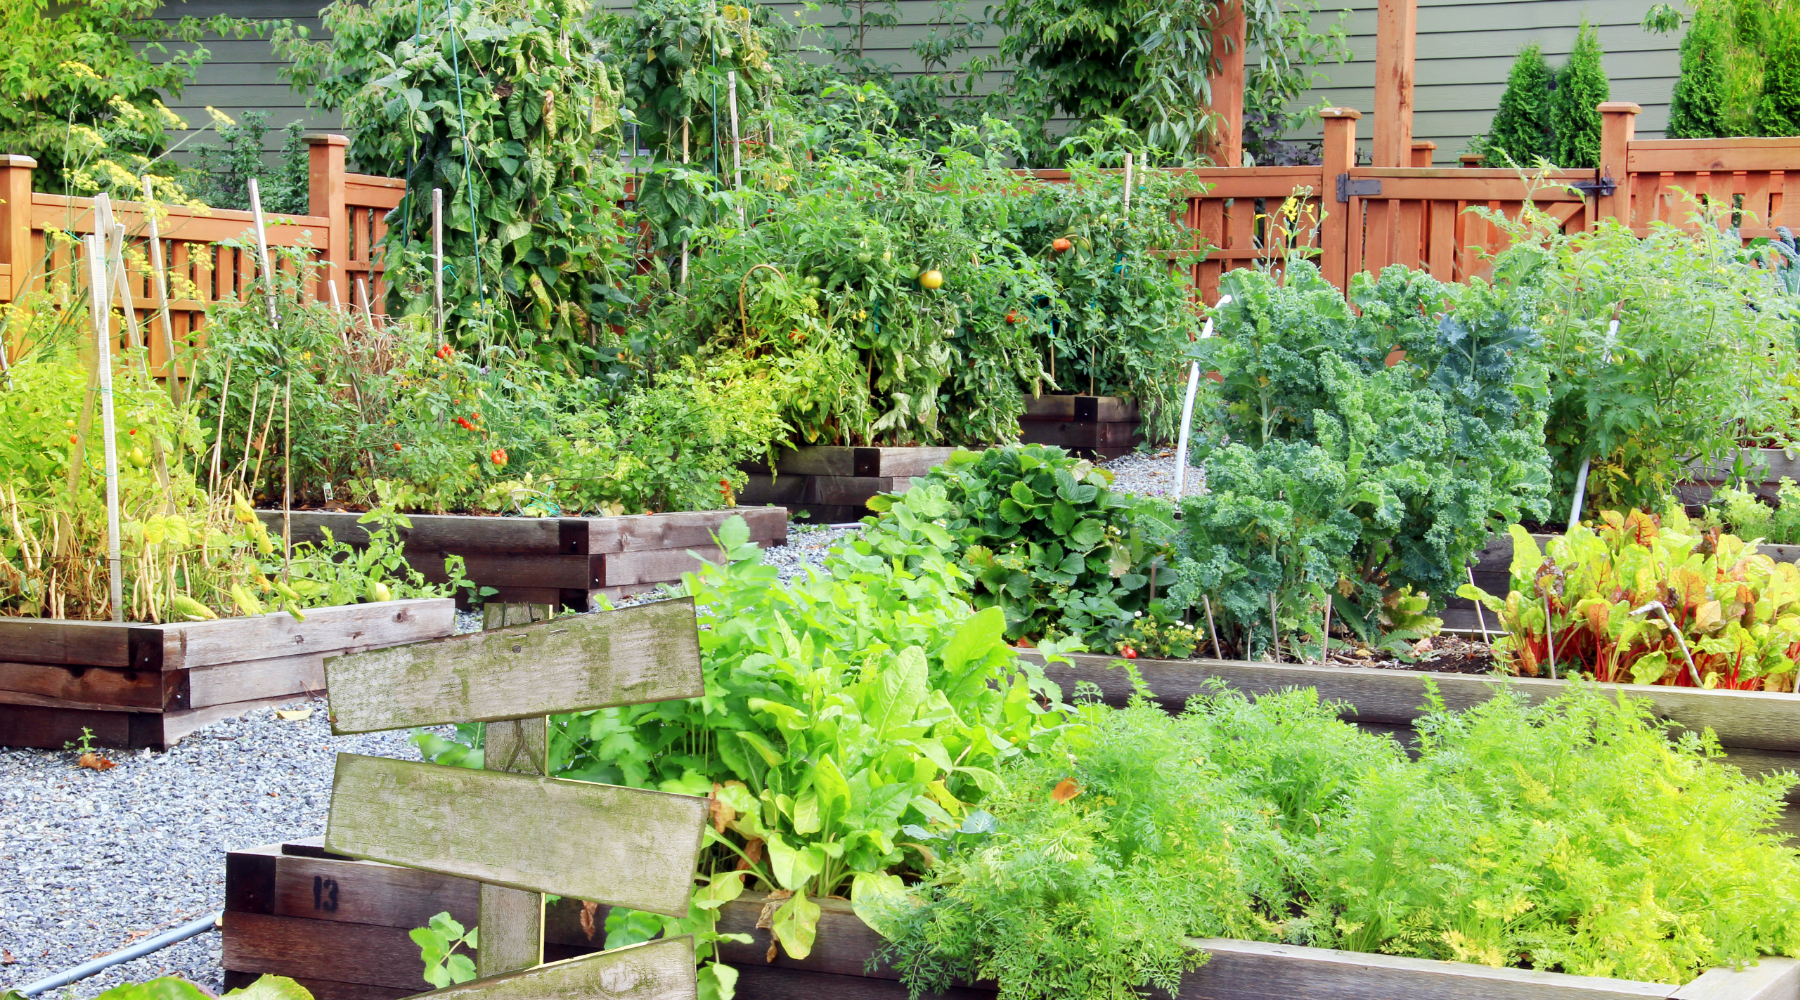 8 Benefits of Community Gardens